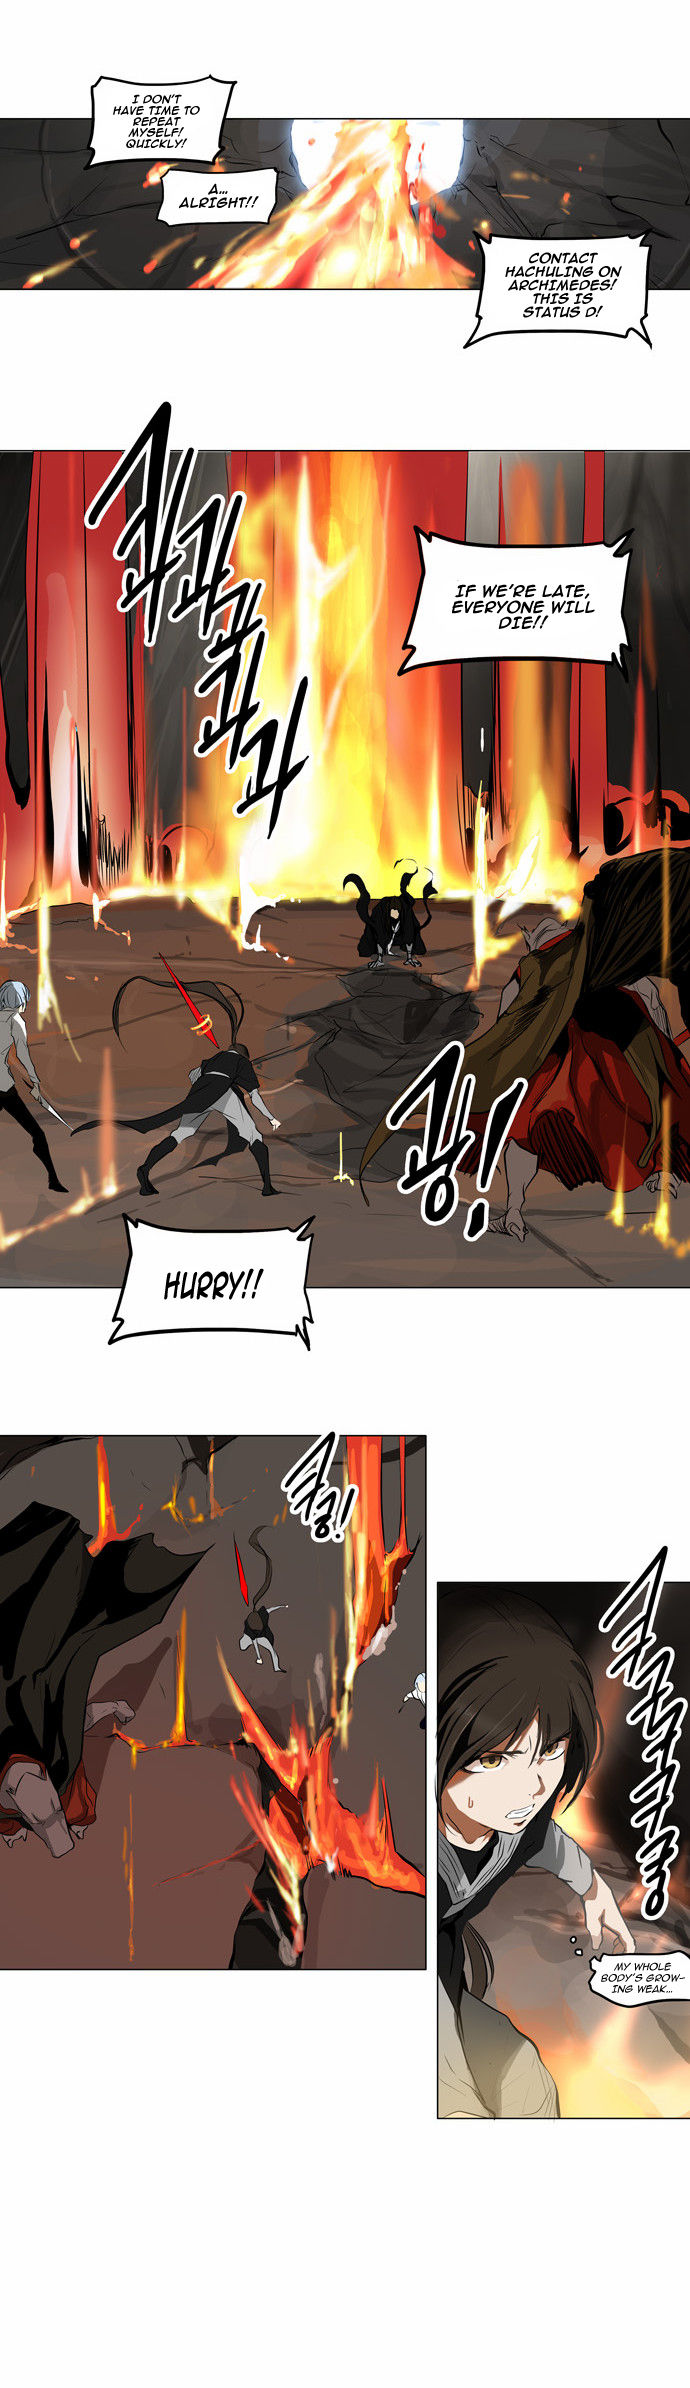 Tower of God 186 Page 2